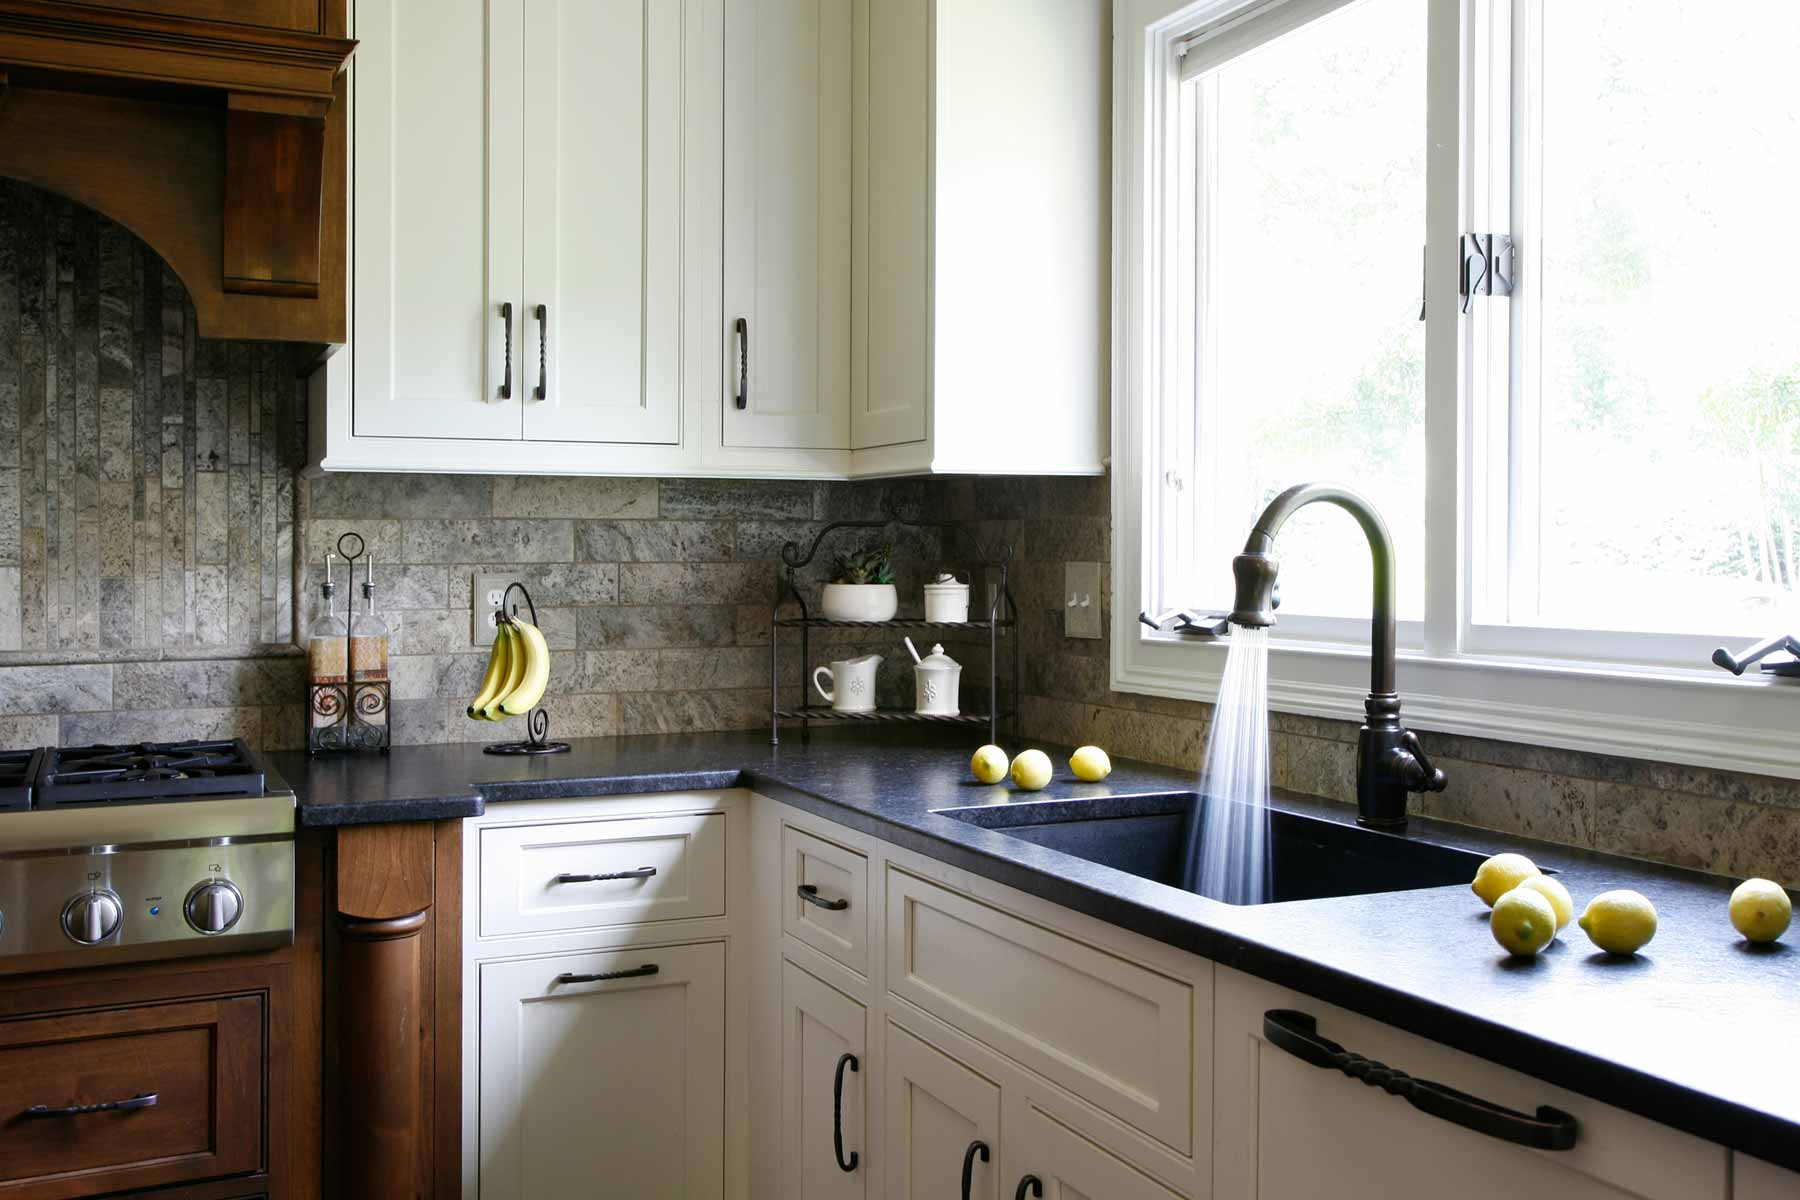 Newly remodeled kitchen boasts natural wood, white cabinets, and dark solid surface countertop